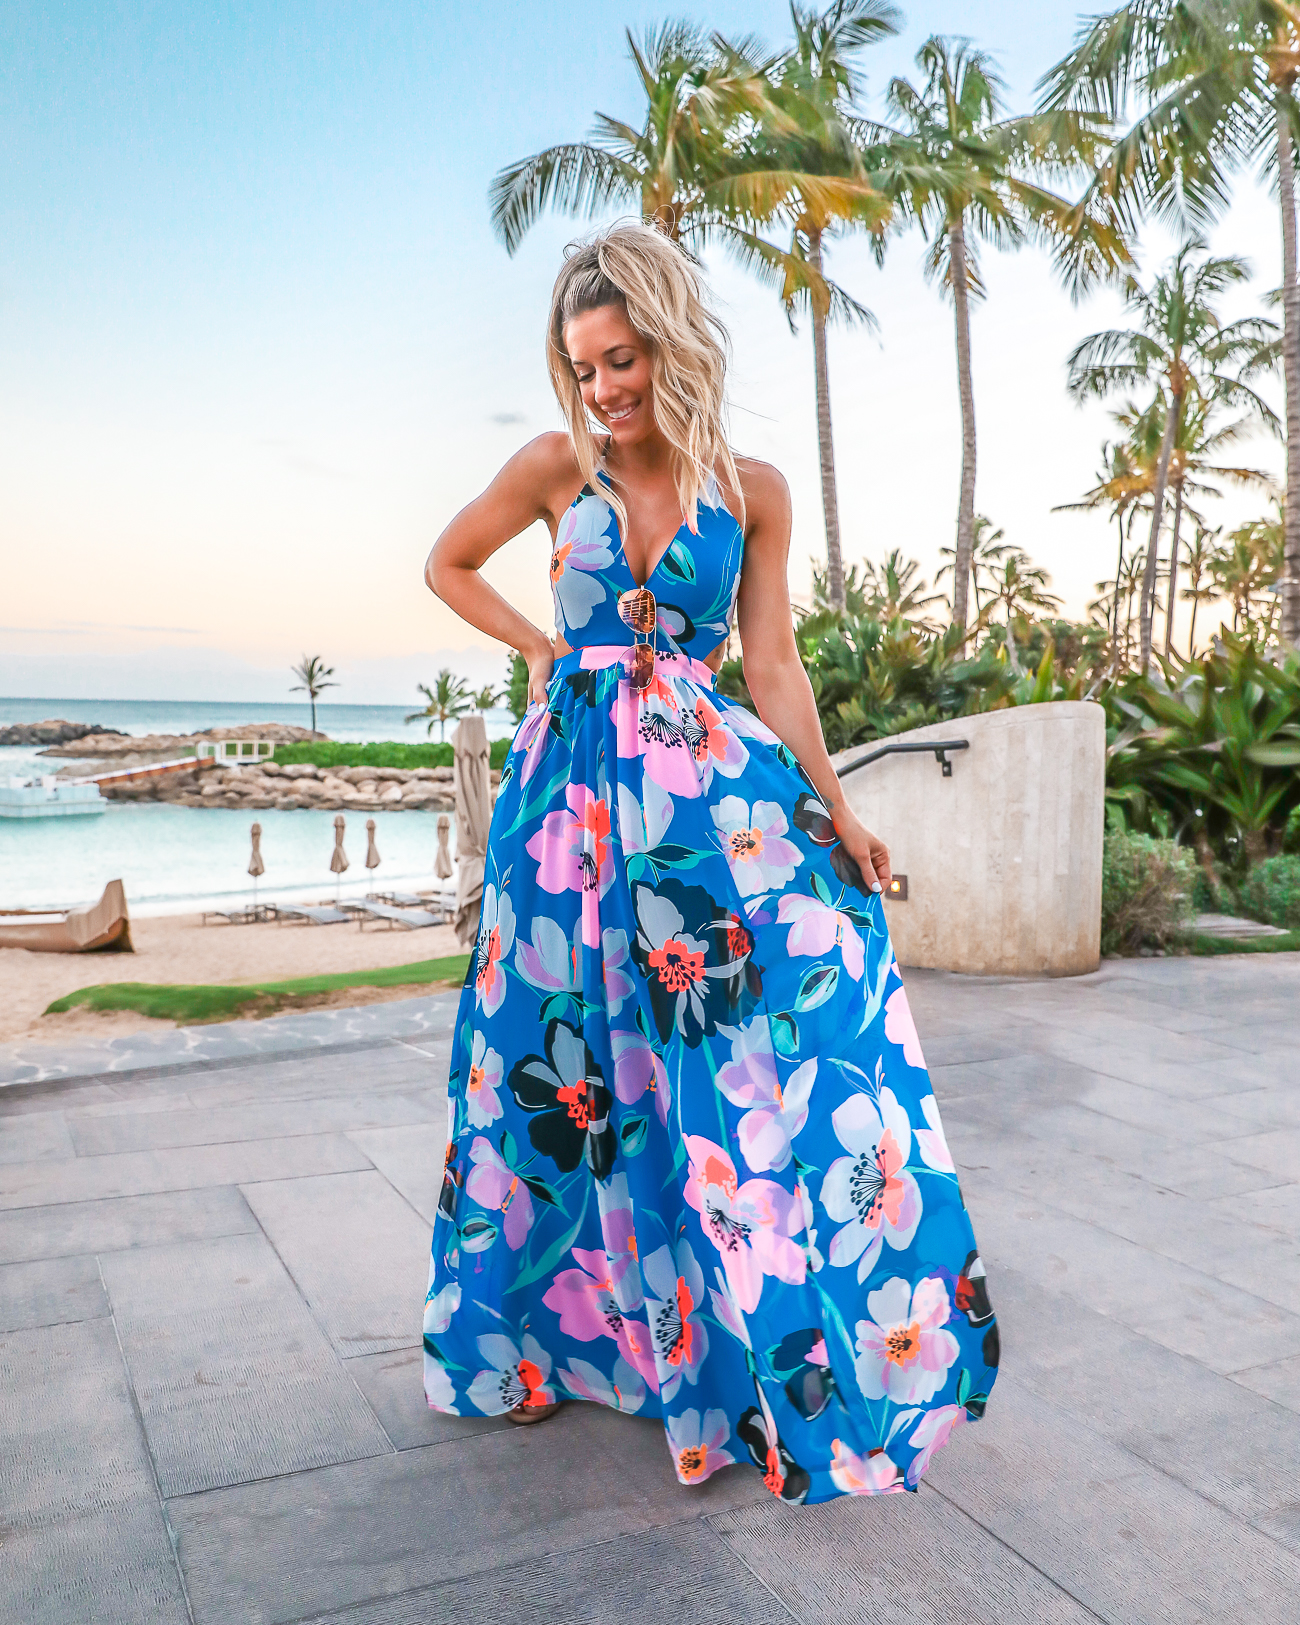 Express Blue Tropical Maxi Dress Vacation Outfit Idea Four Season Oahu Hawaii Outfit Laura Beverlin 30th Birthday-6